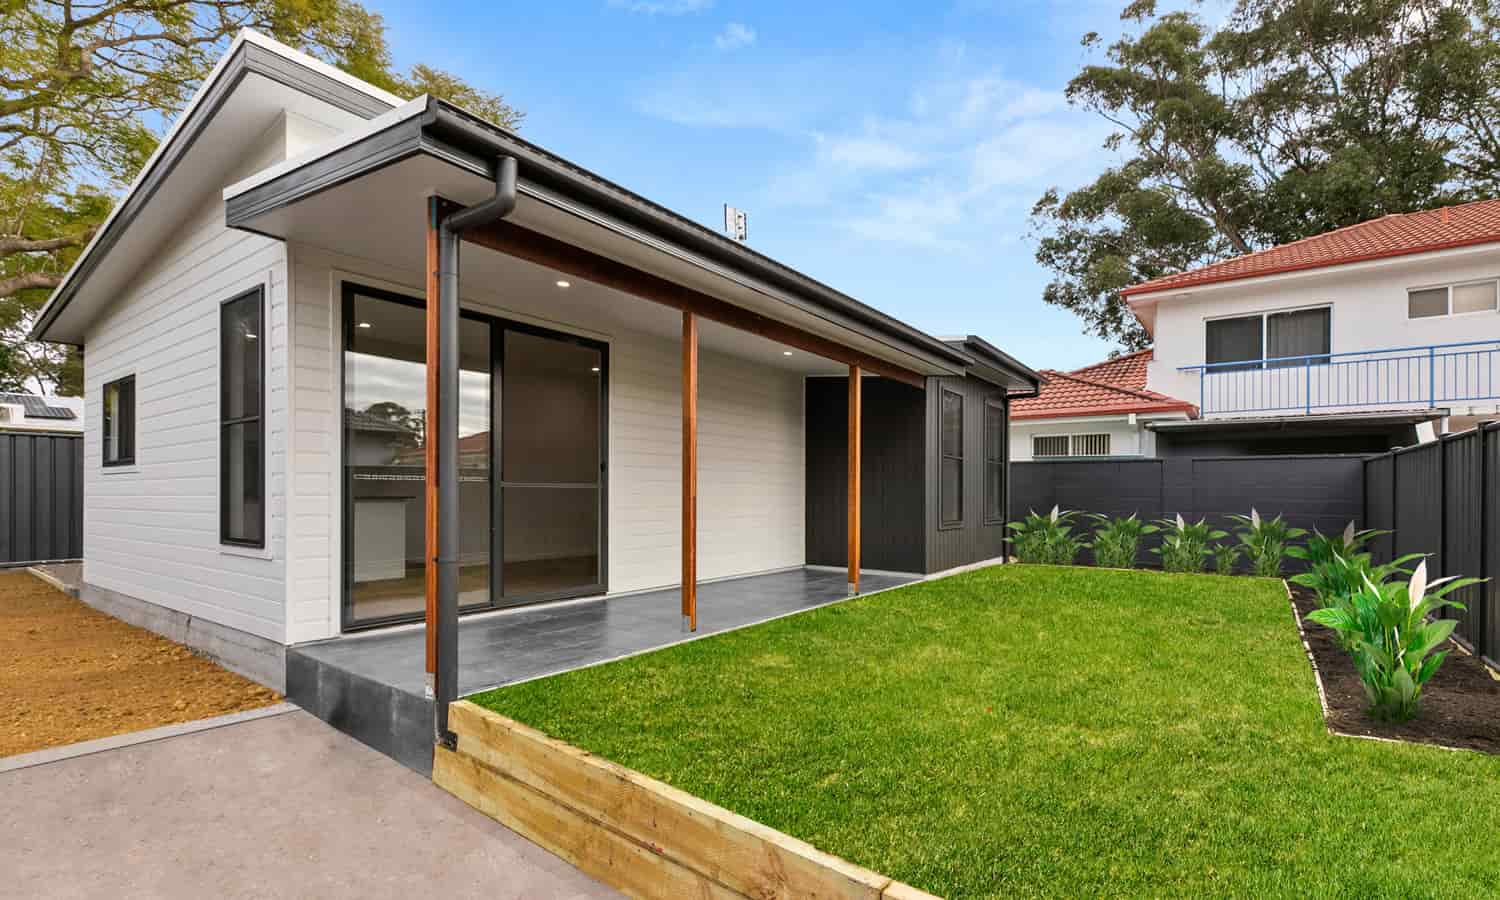 Capital Gains Tax Exemption on Granny Flats: What You Need to Know